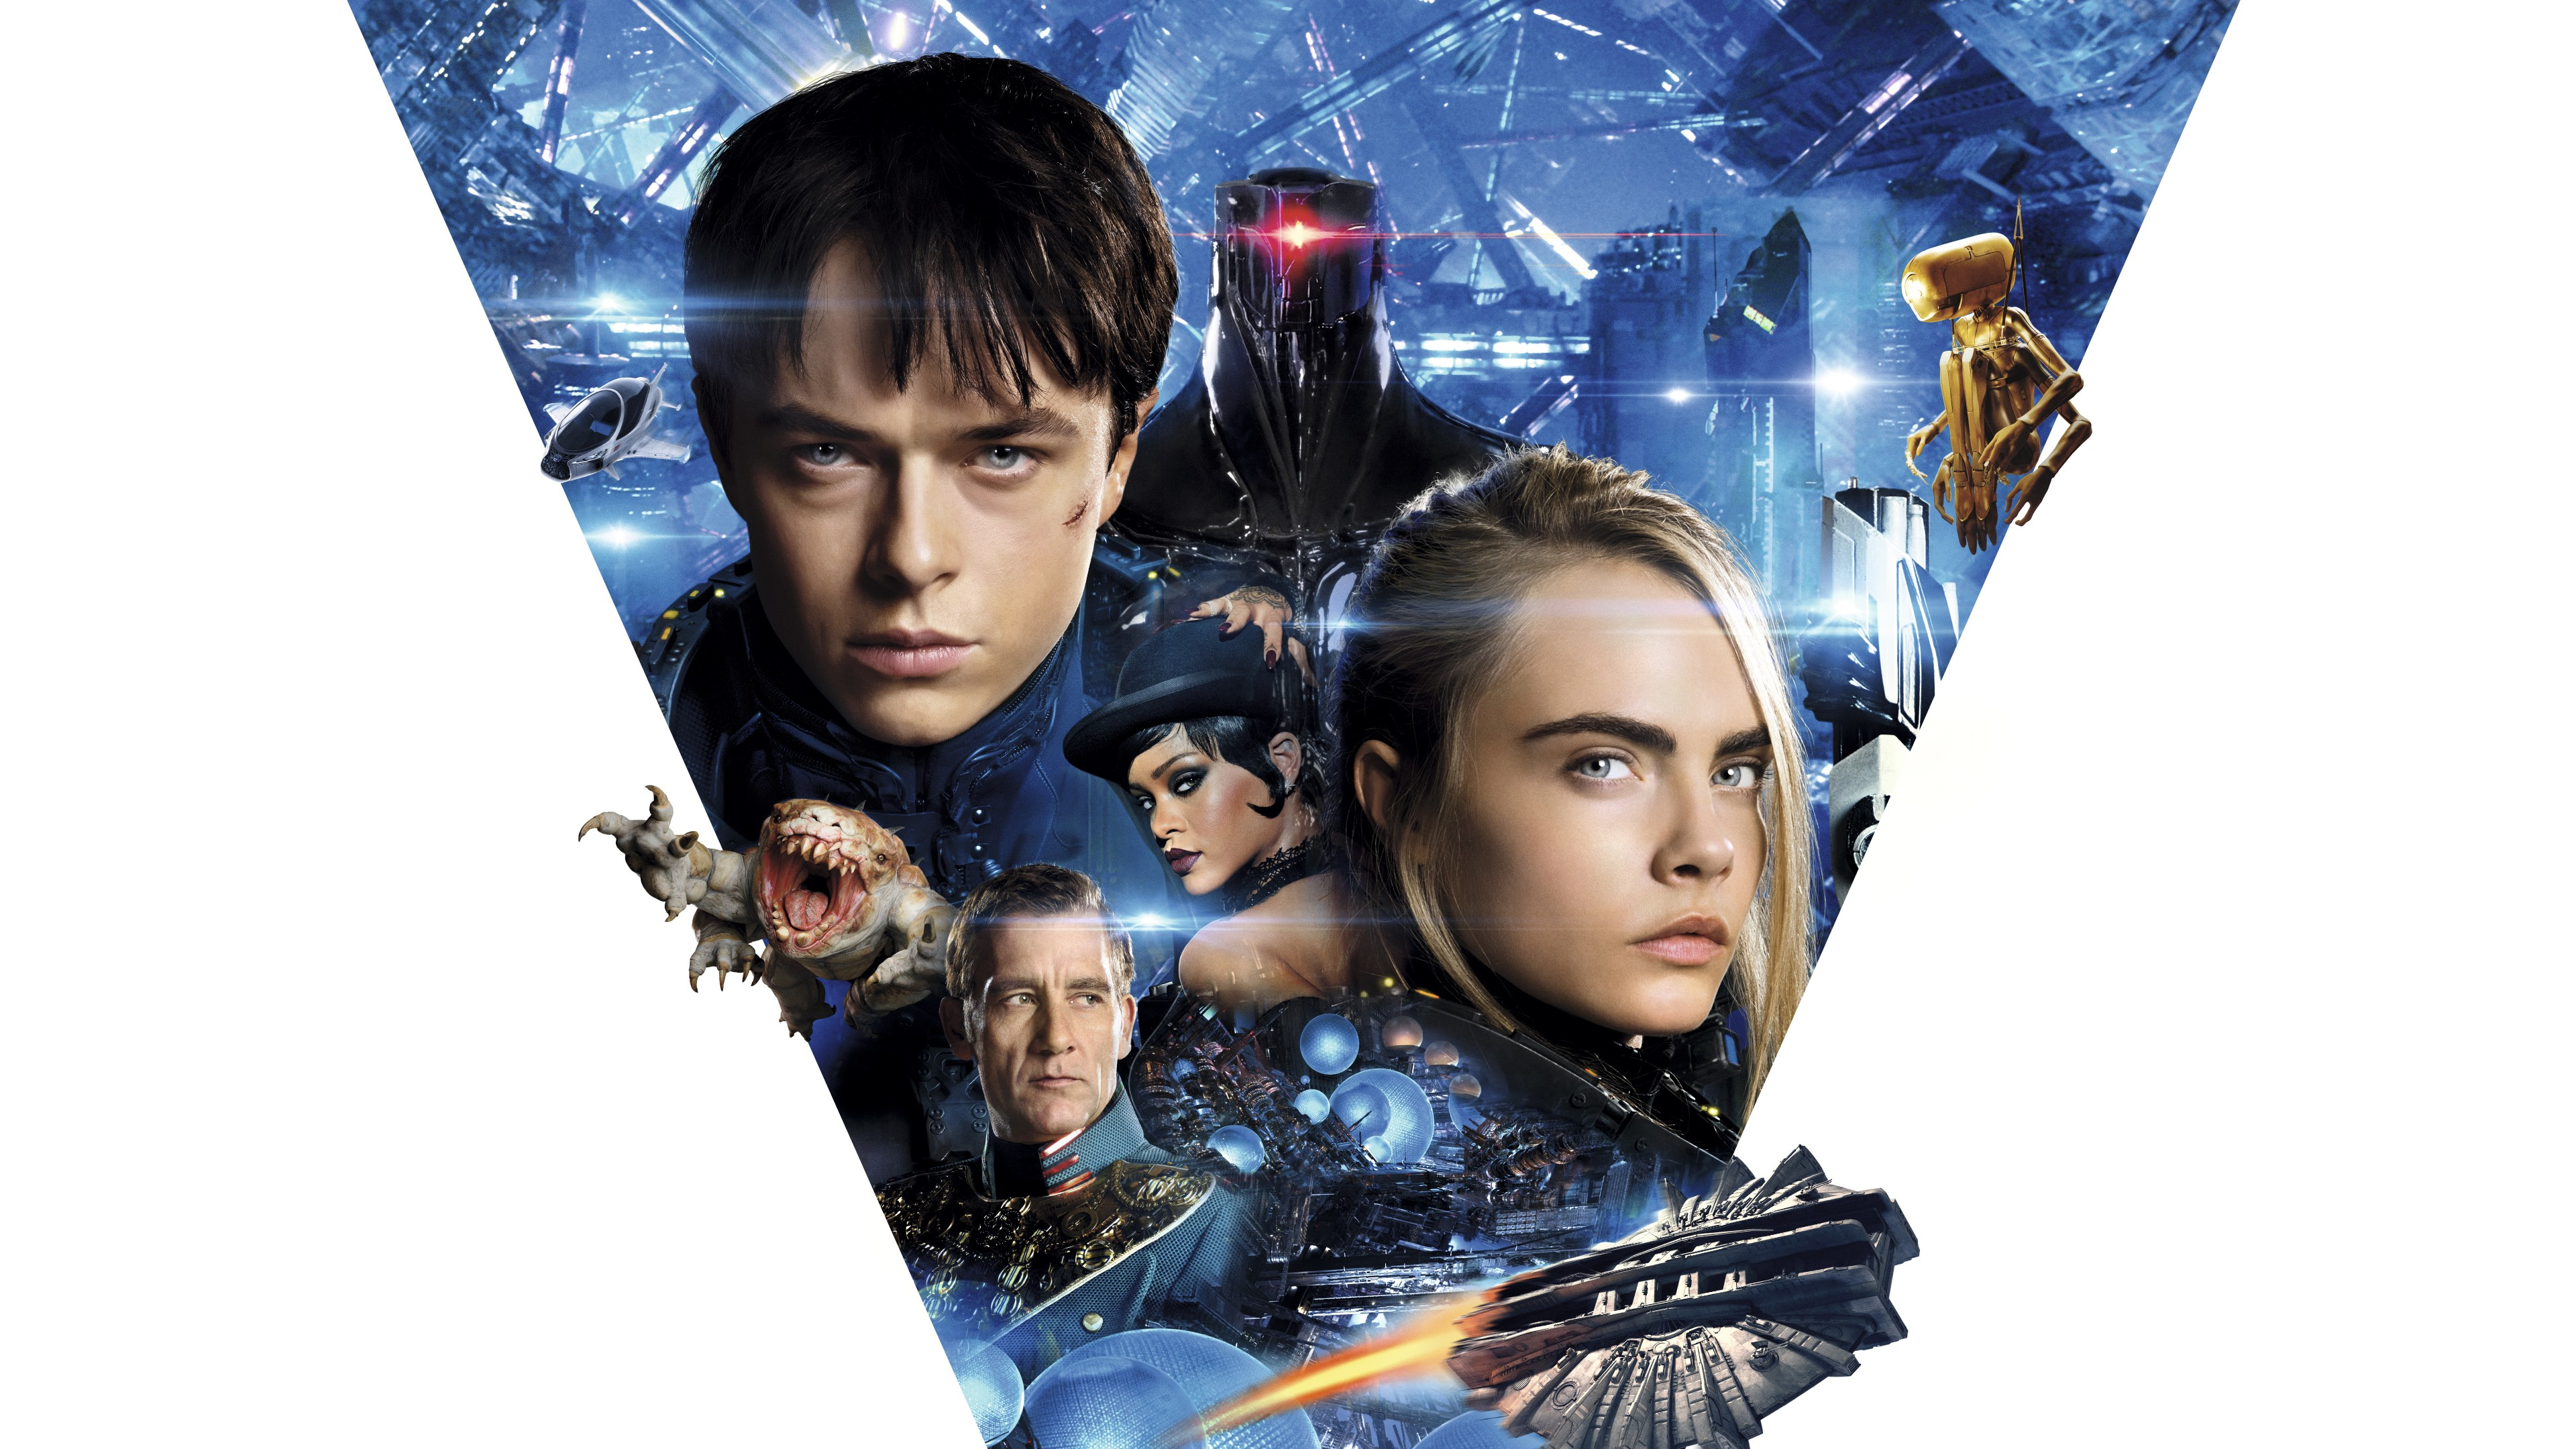 Valerian and the City of a Thousand Planets Official Movie Wallpaper